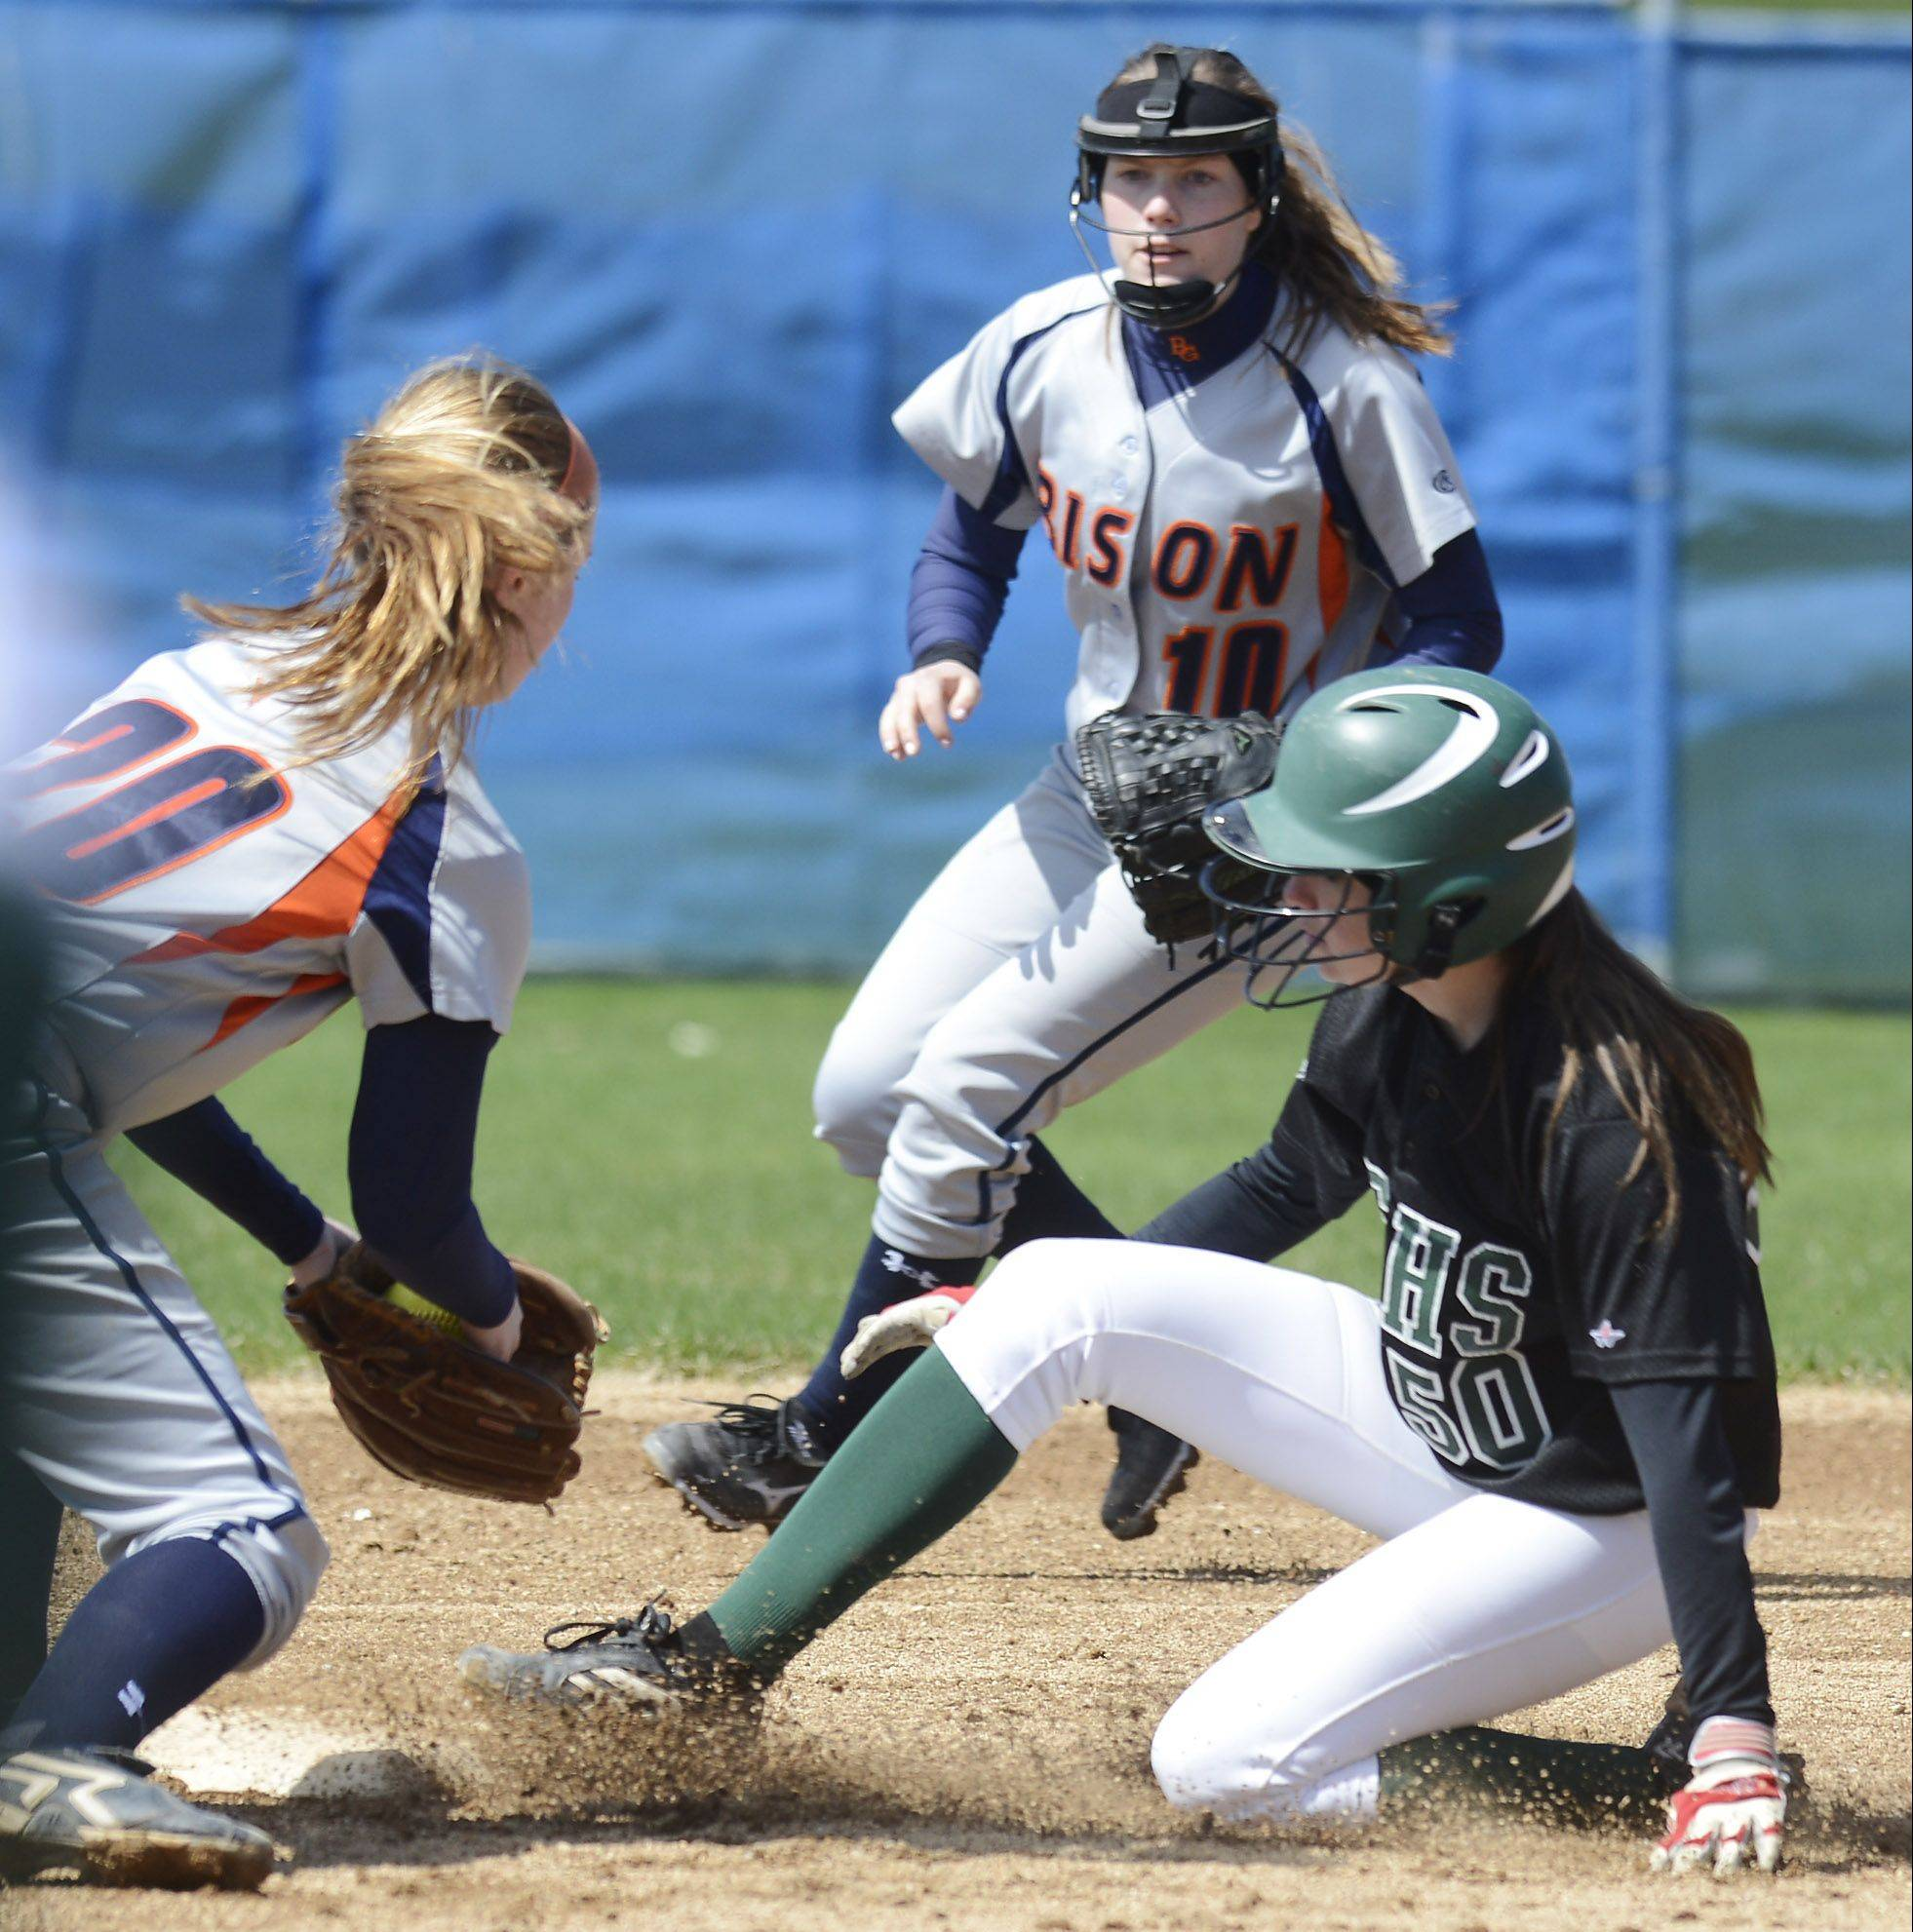 Elk Grove's Abbey Sloan slides safely into second base on a steal ahead of the tag by Buffalo Grove shortstop Dea Barton as second baseman Maddi Morini backs up the play Saturday.